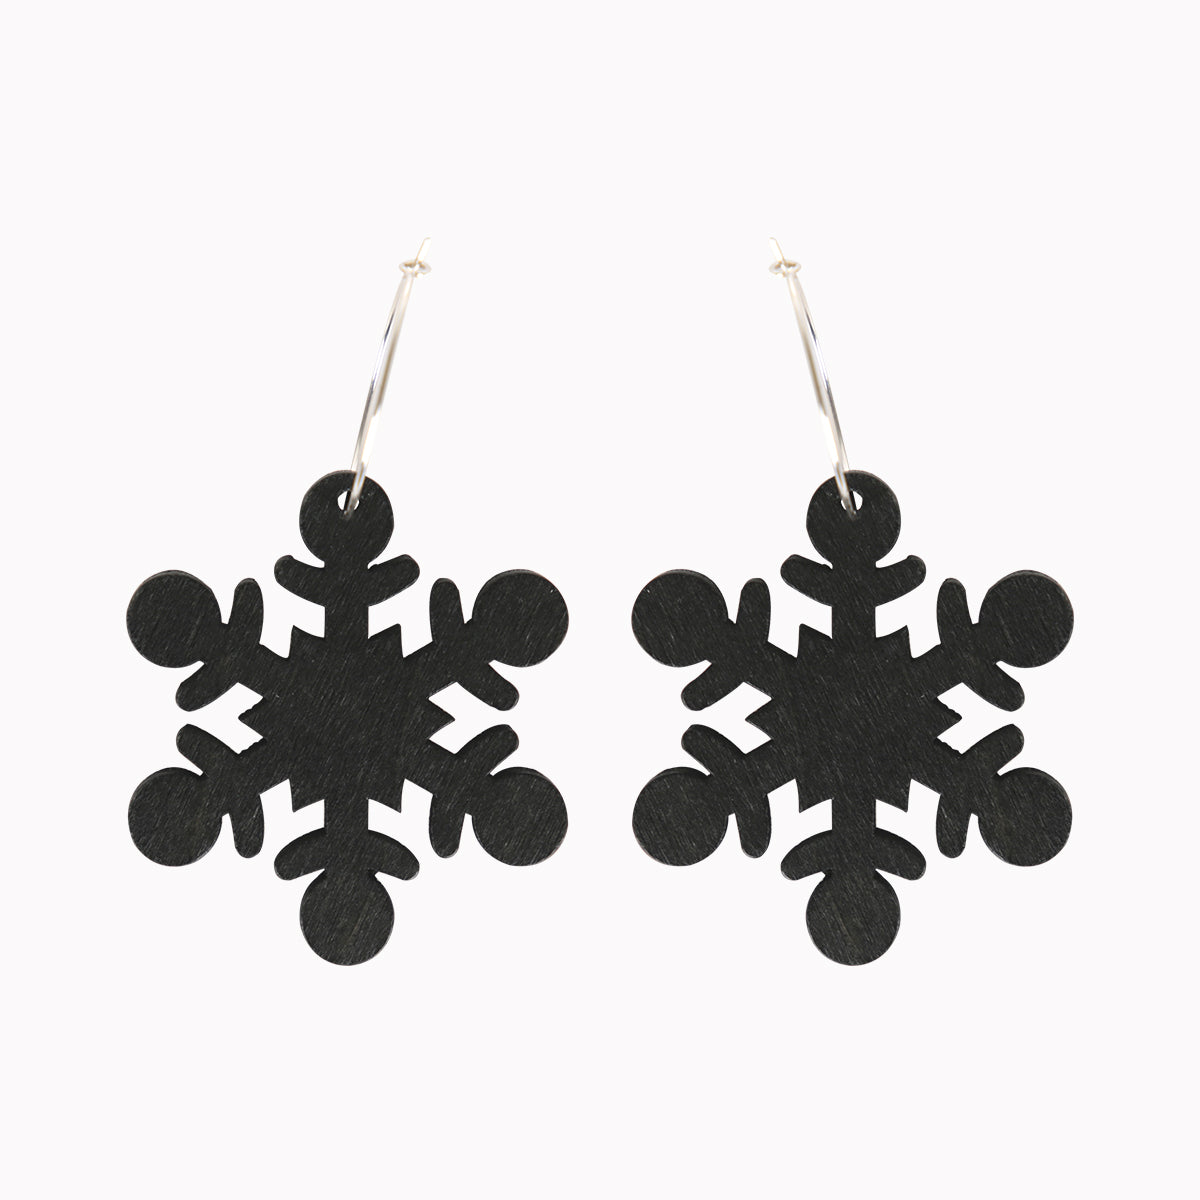 Kittilä earrings